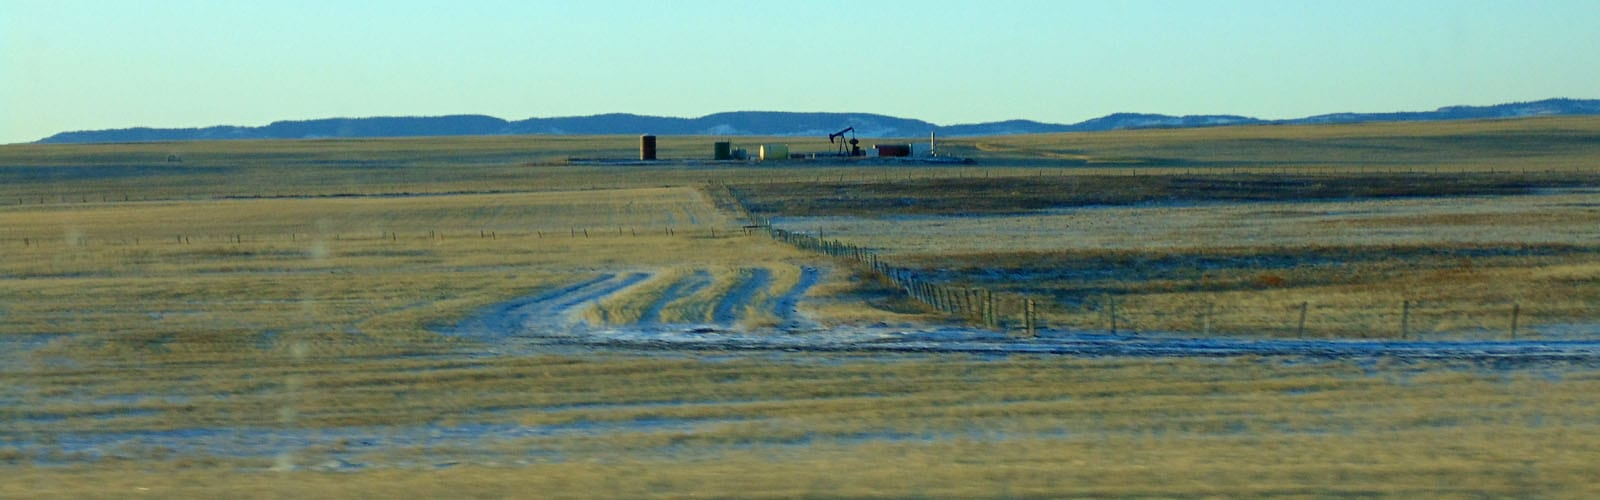 Alberta foothills with oilwell in foreground-sliver